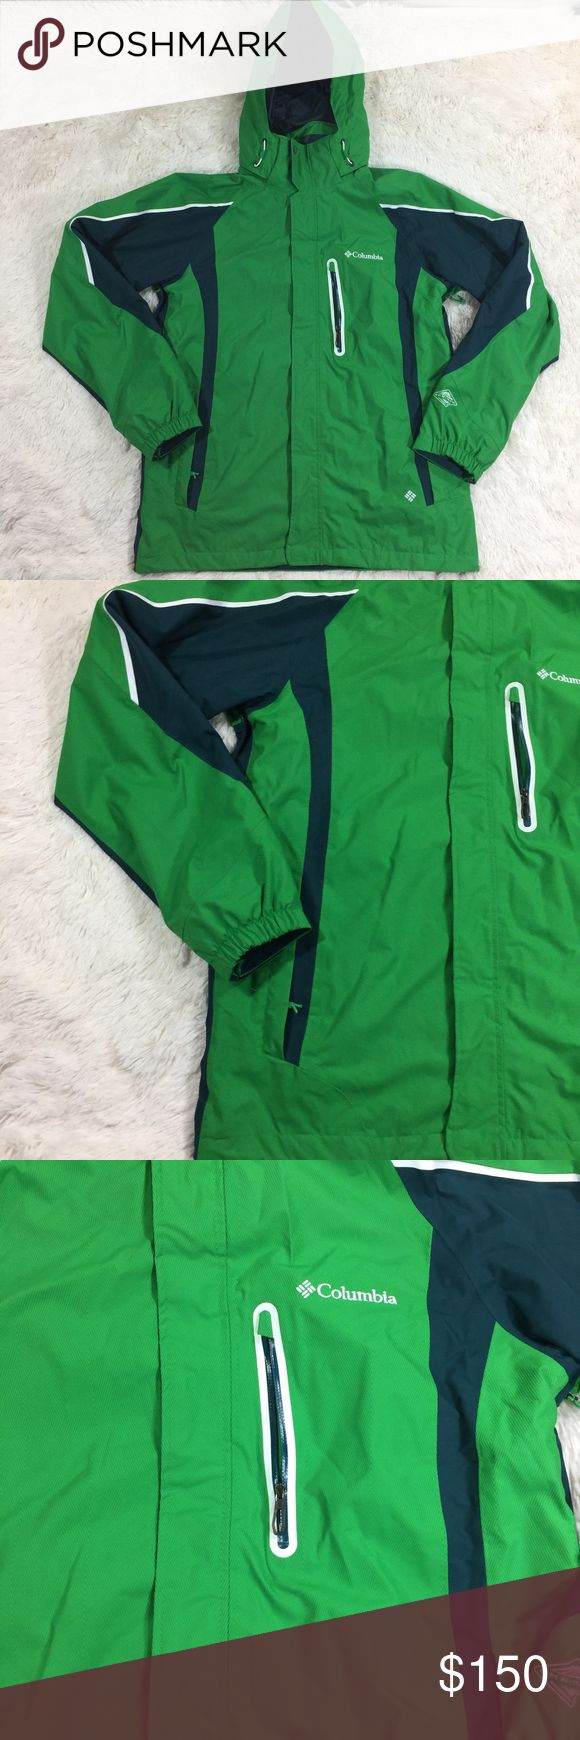 Columbia Interchange Green Heavy Double Ski Jacket Columbia Sportswear Interchange Men's Medium Green Heavy Double Ski Jacket  *Please not that this is just the outer shell of the jacket. This can still be worn as a great winter jacket *  Retails: $230.00 Type: Ski Jacket  Style: Interchange Double Ski Jacket  Features: Water Resistant, Removable Hood, Double Jacket, Omnitech Waterproof, Critically Seam Sealed, Googles Pocket, Media Pocket, Underarm Zip Vents, Breathable Technology  Brand…